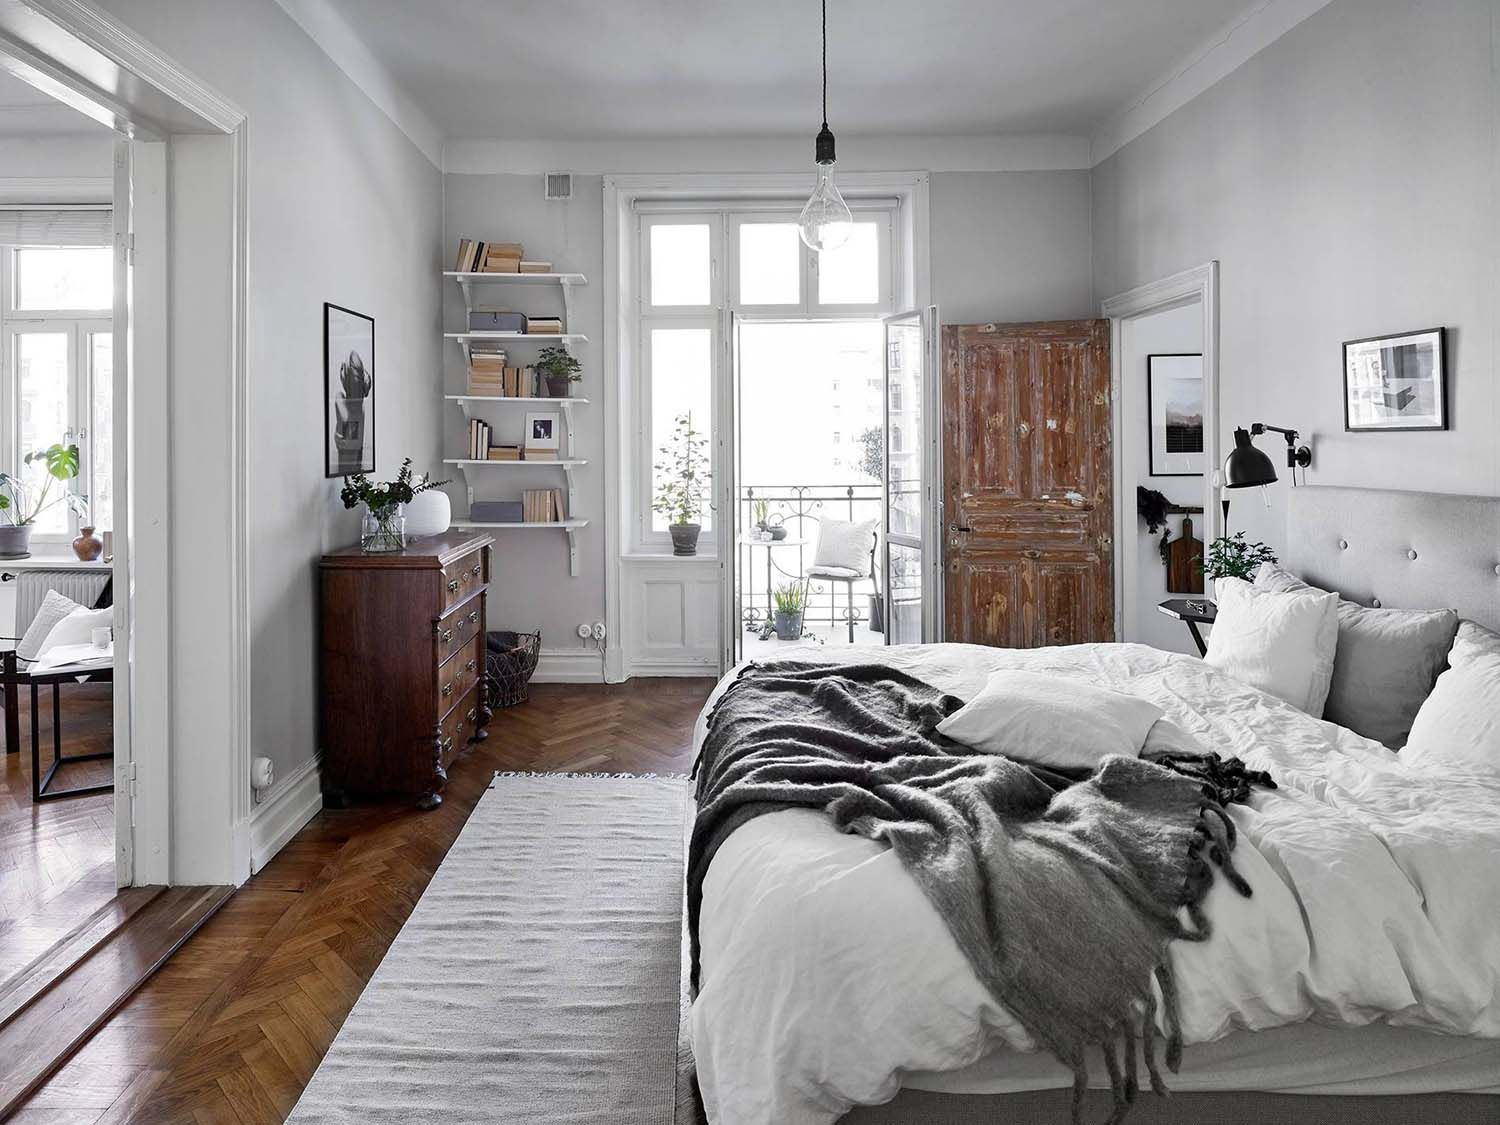 Skandinavische Inneneinrichtung 33 Ultra-cozy Bedroom Decorating Ideas For Winter Warmth